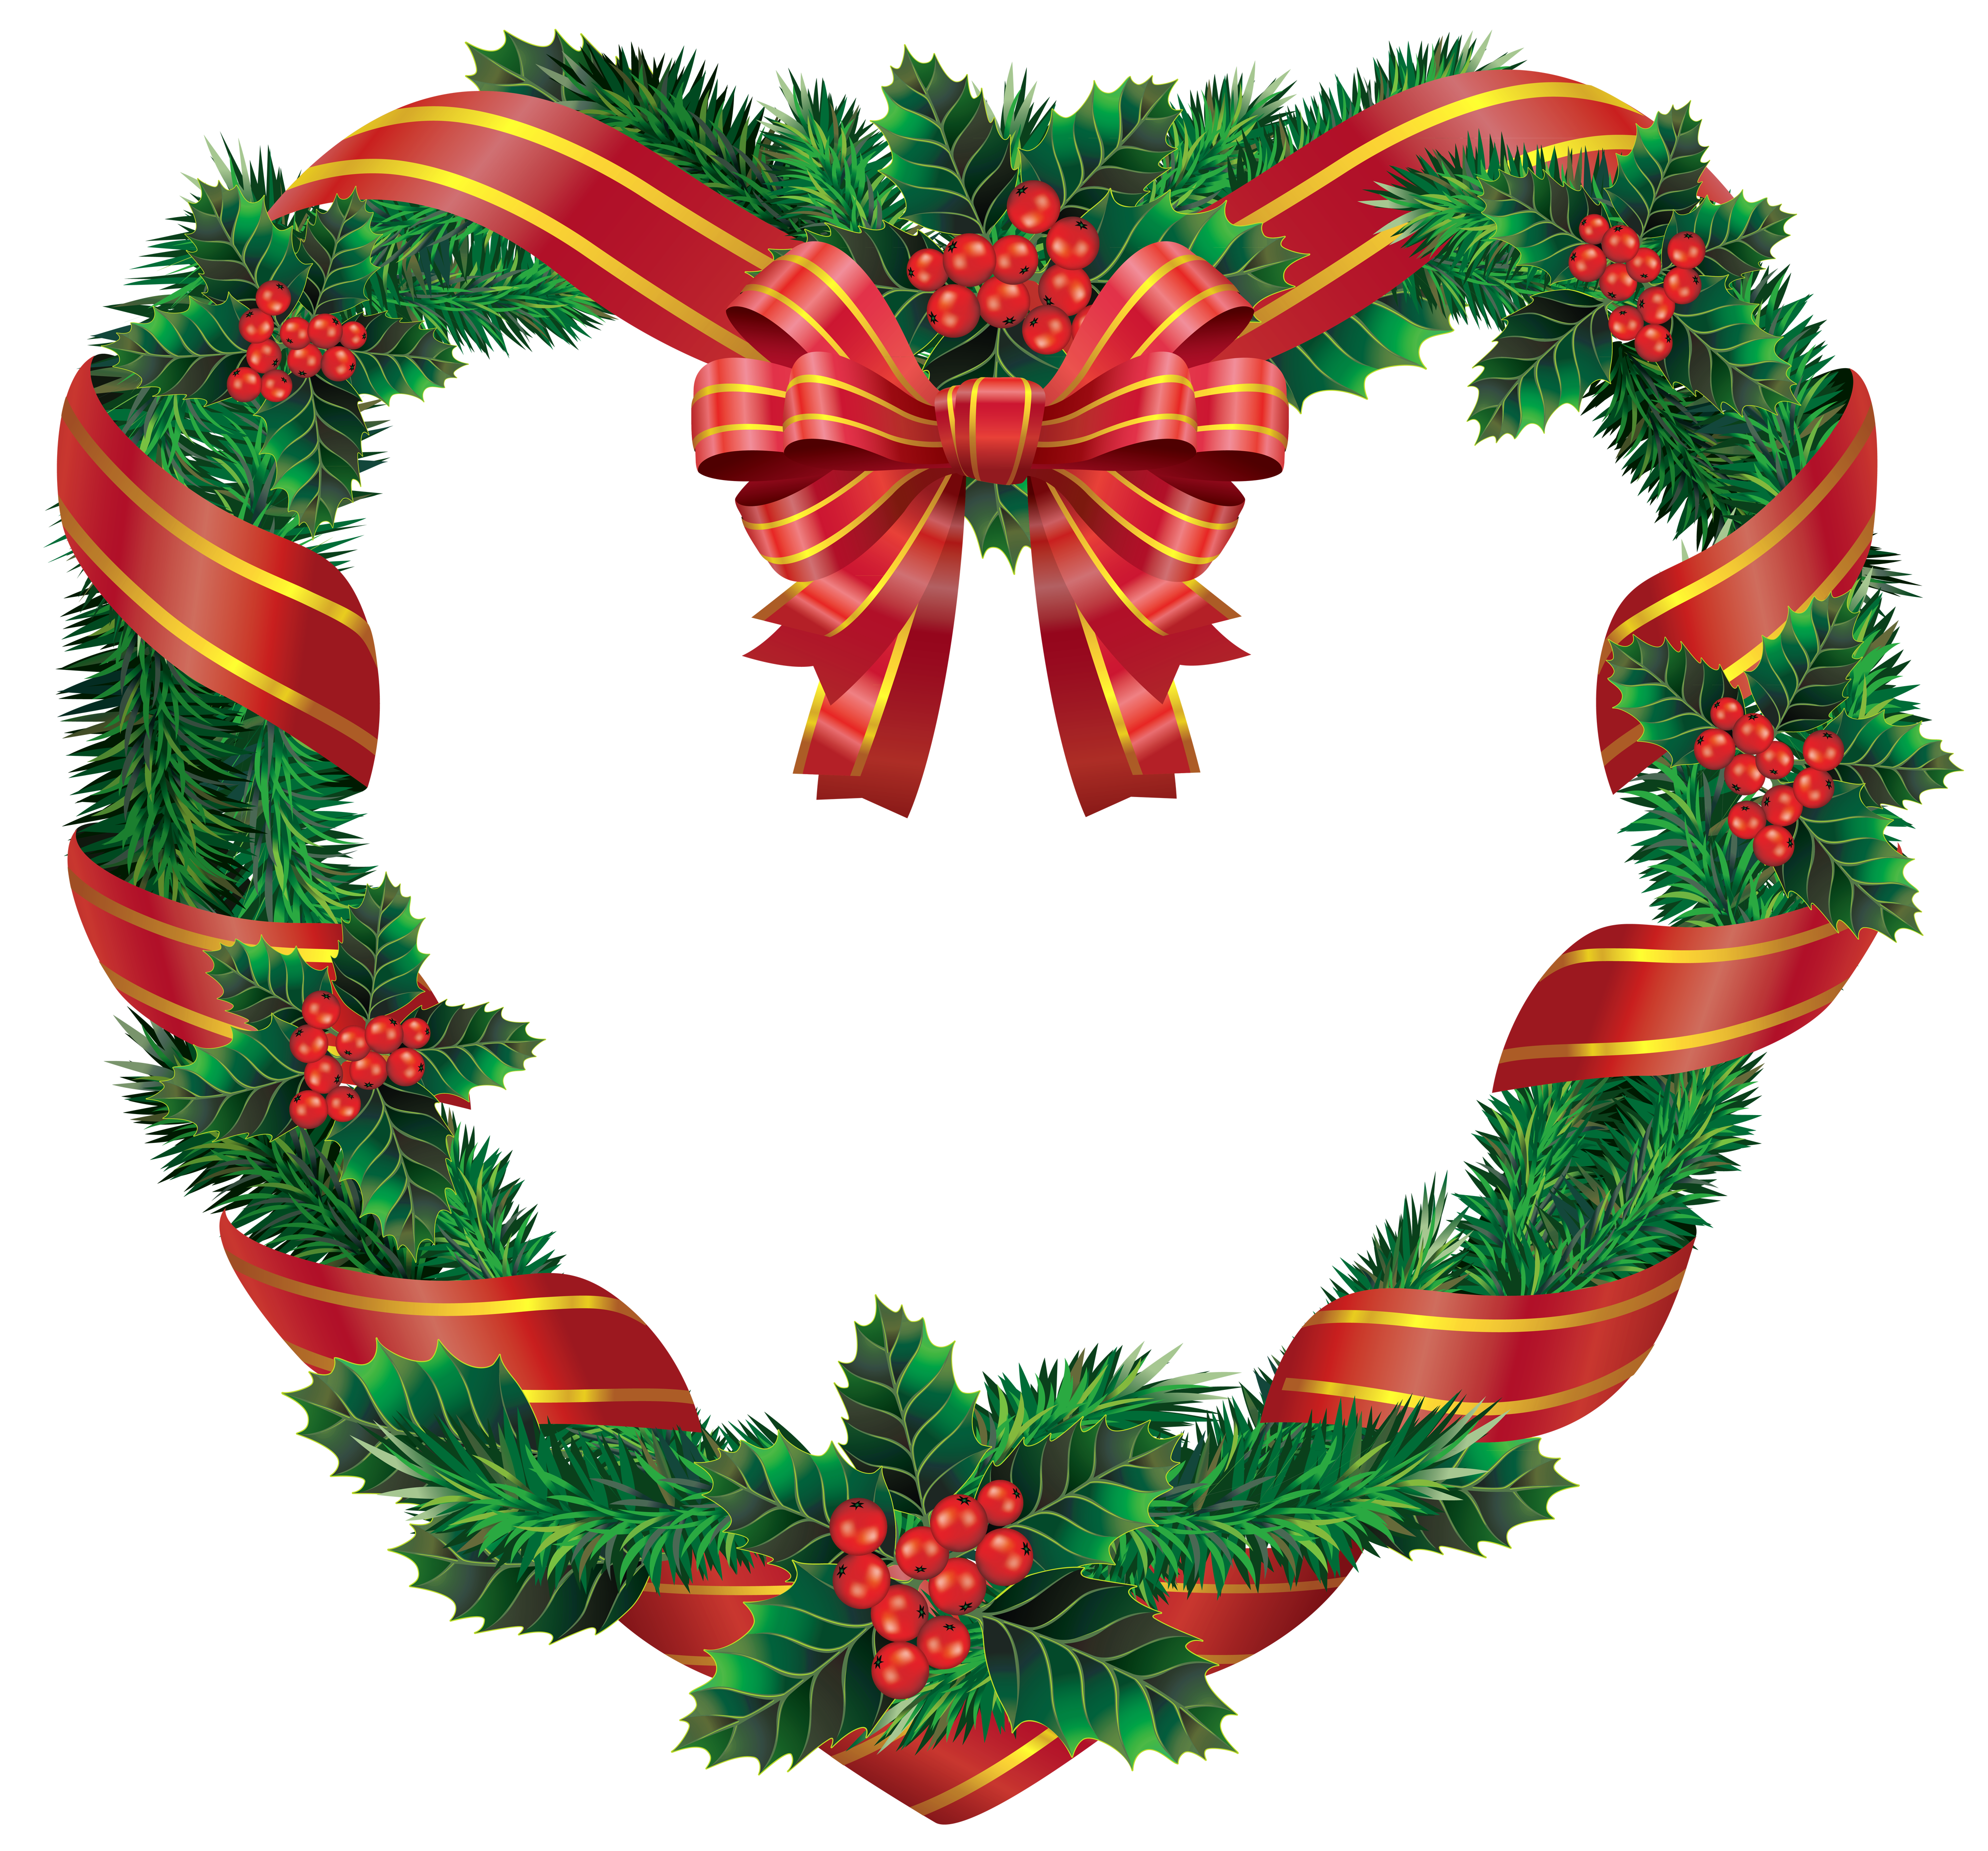 Transparent heart wreath png. Hearts clipart christmas